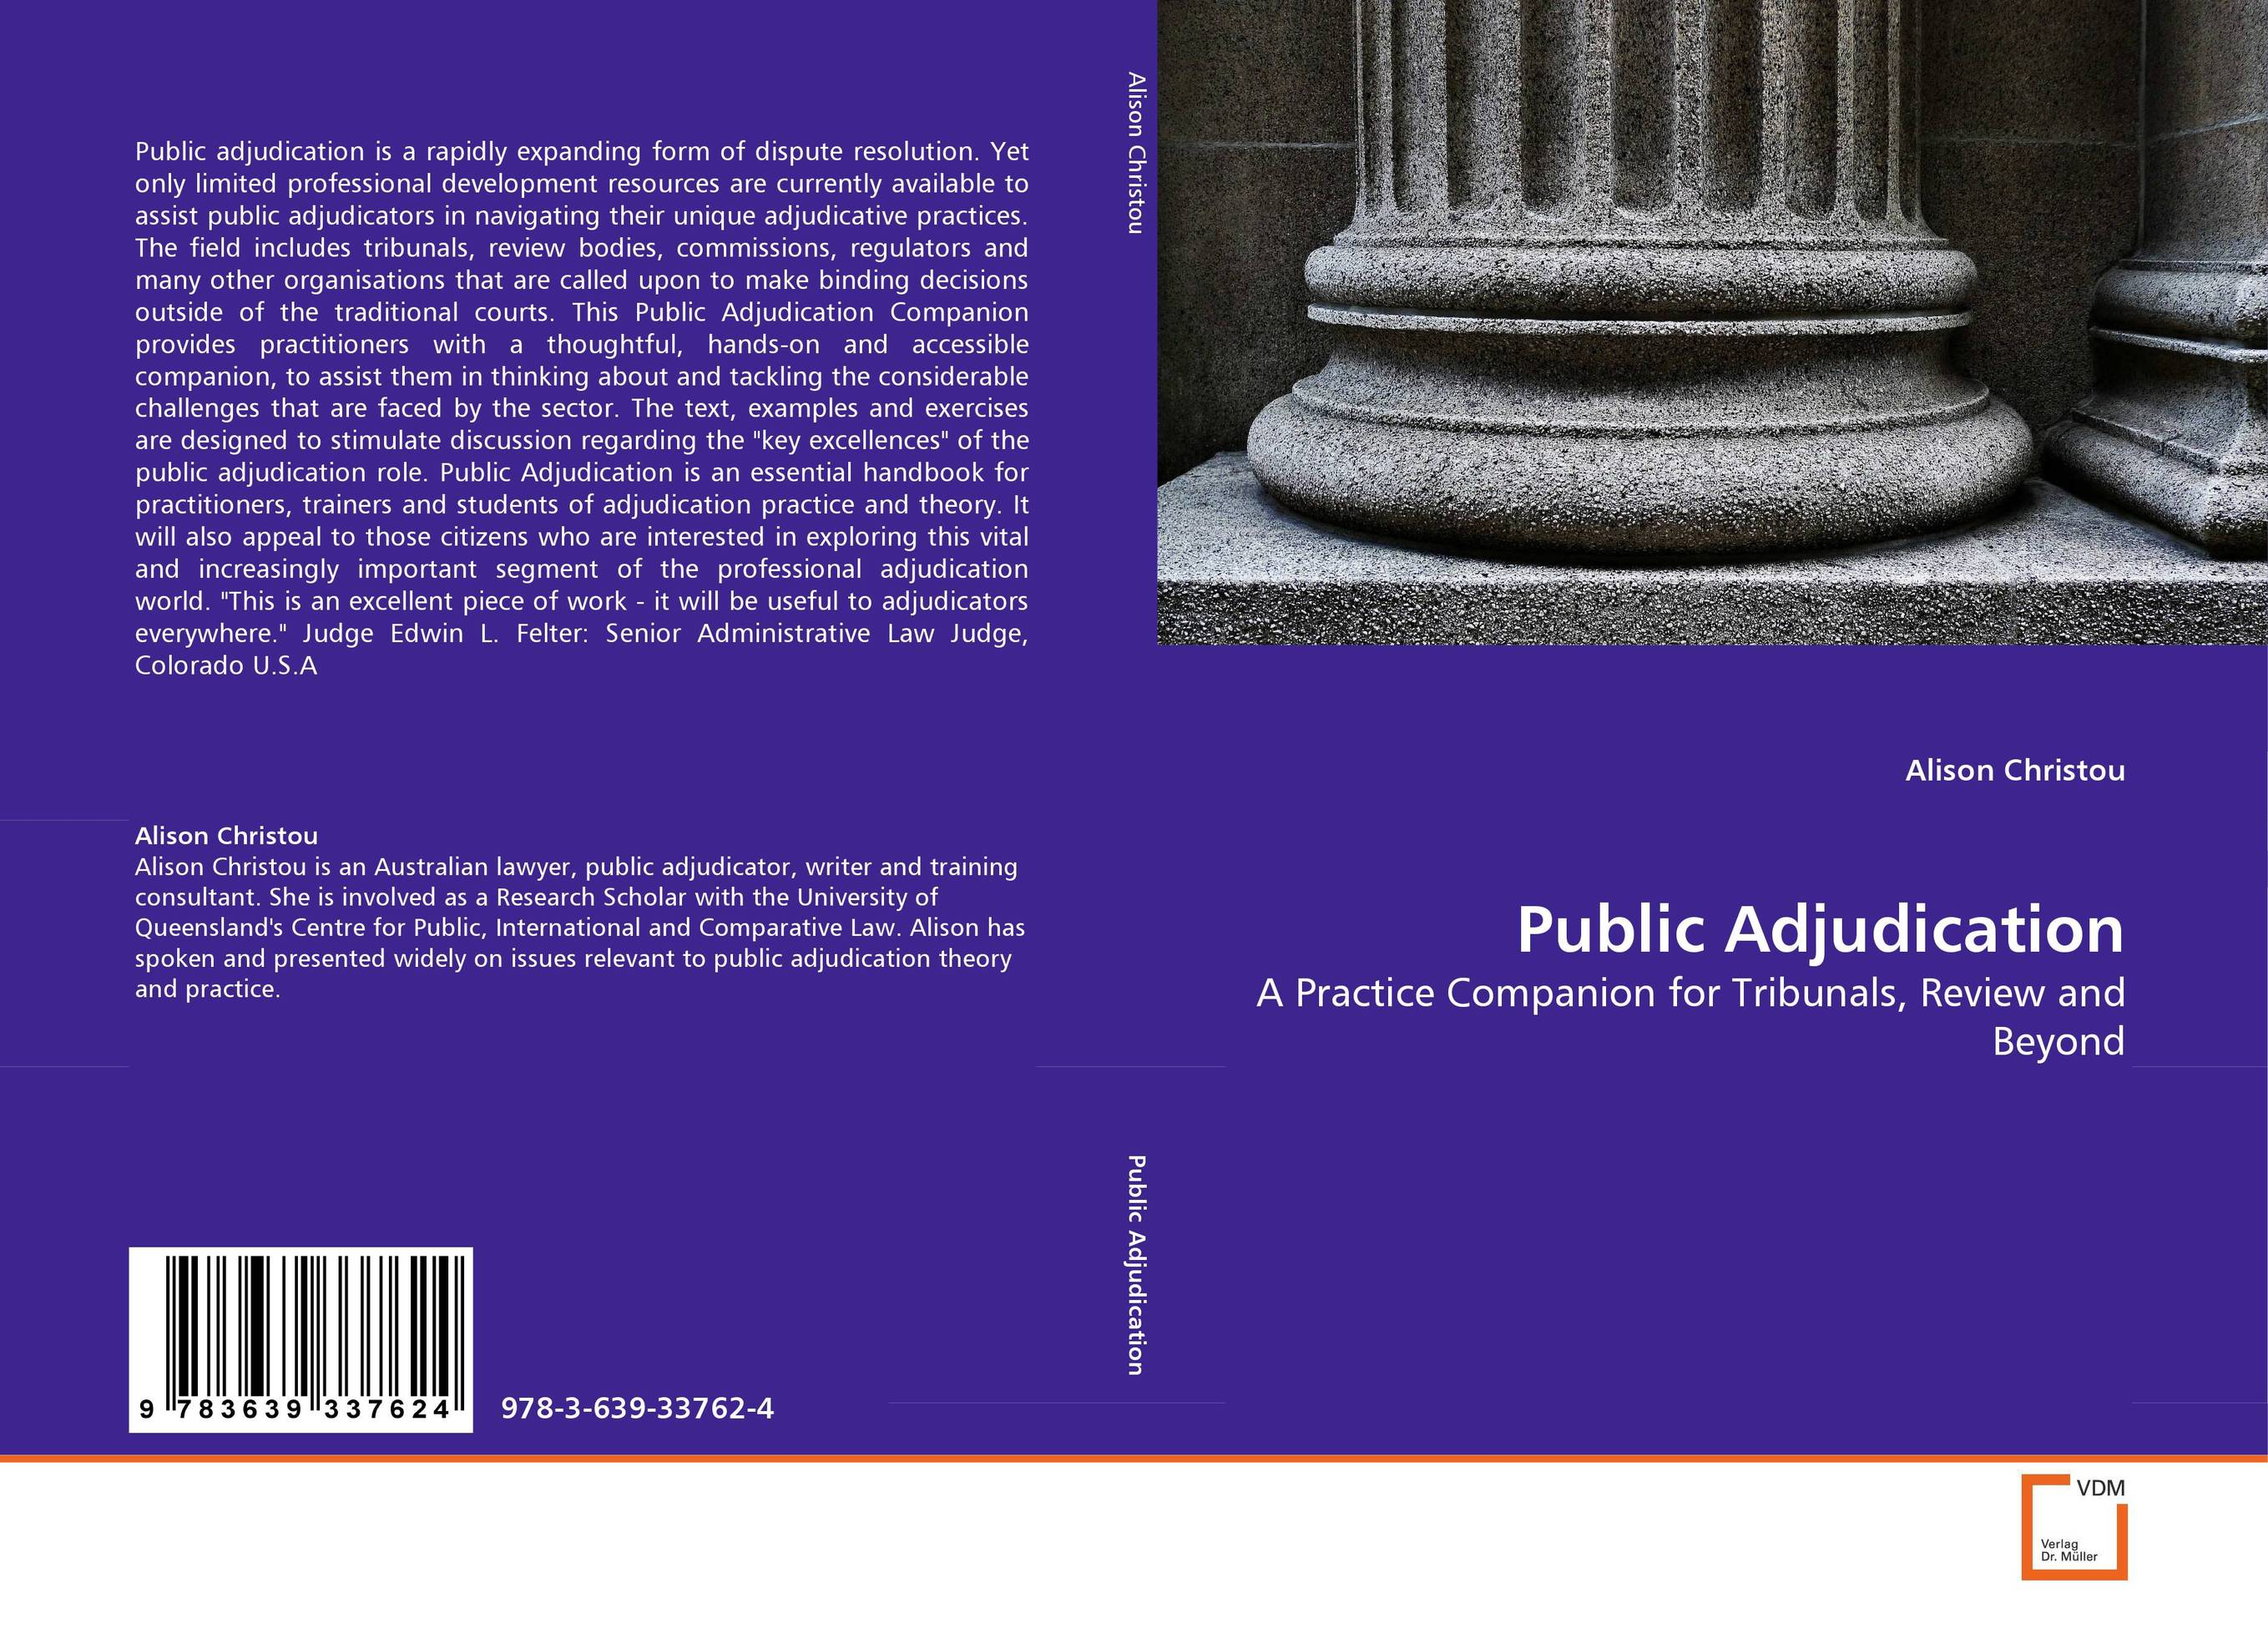 Public Adjudication